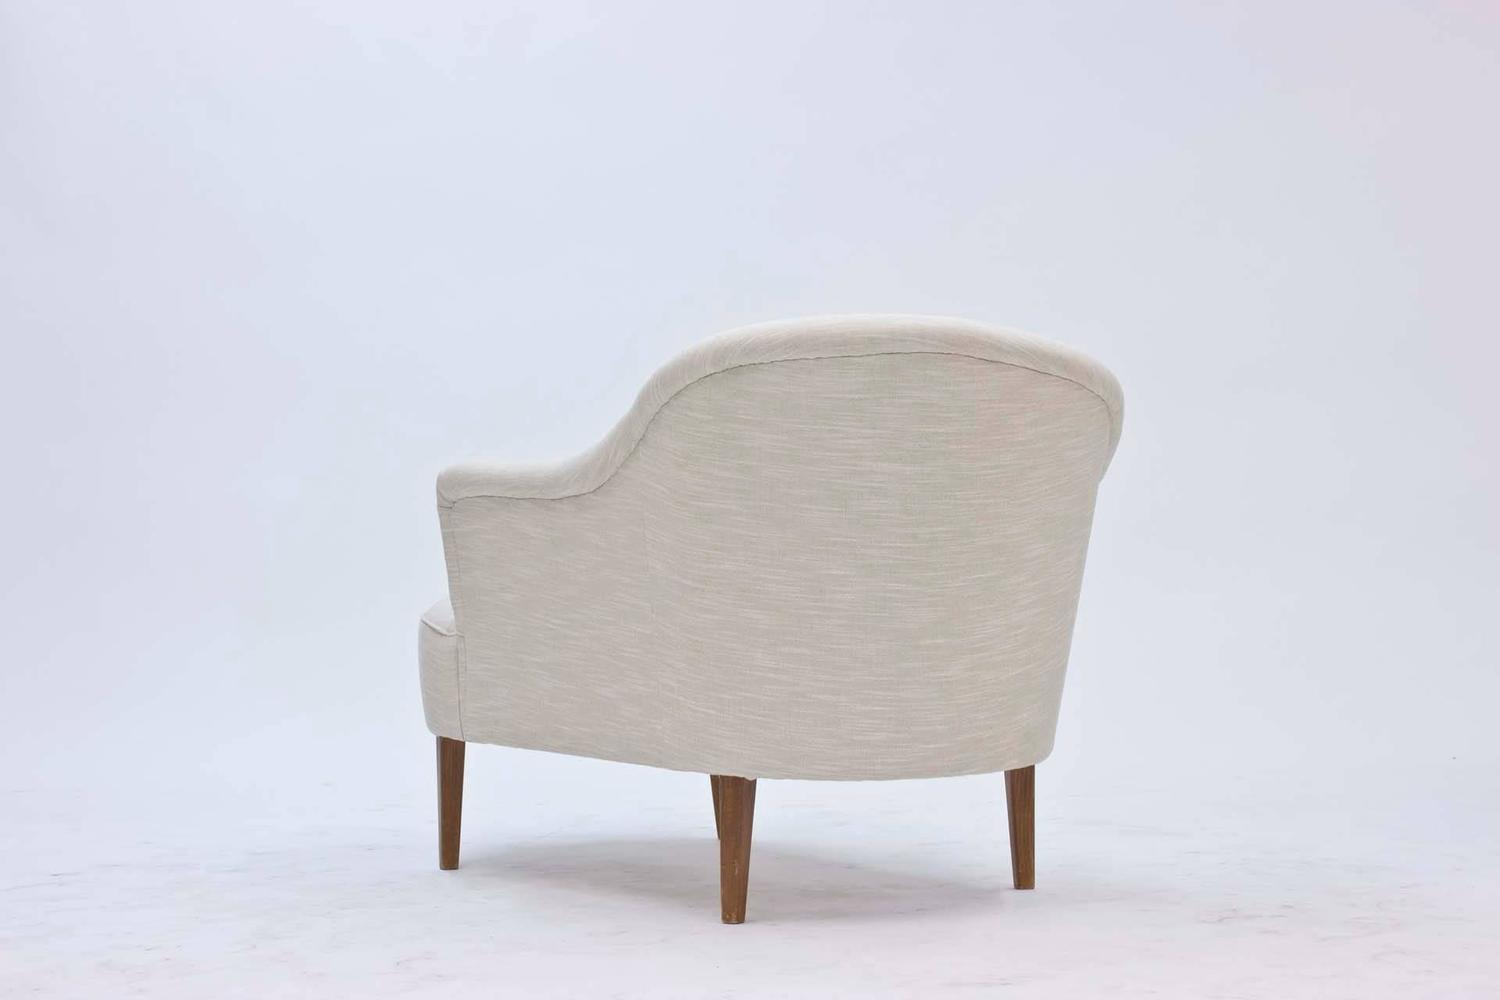 Swedish 1950s chaise longue at 1stdibs for 1950s chaise lounge